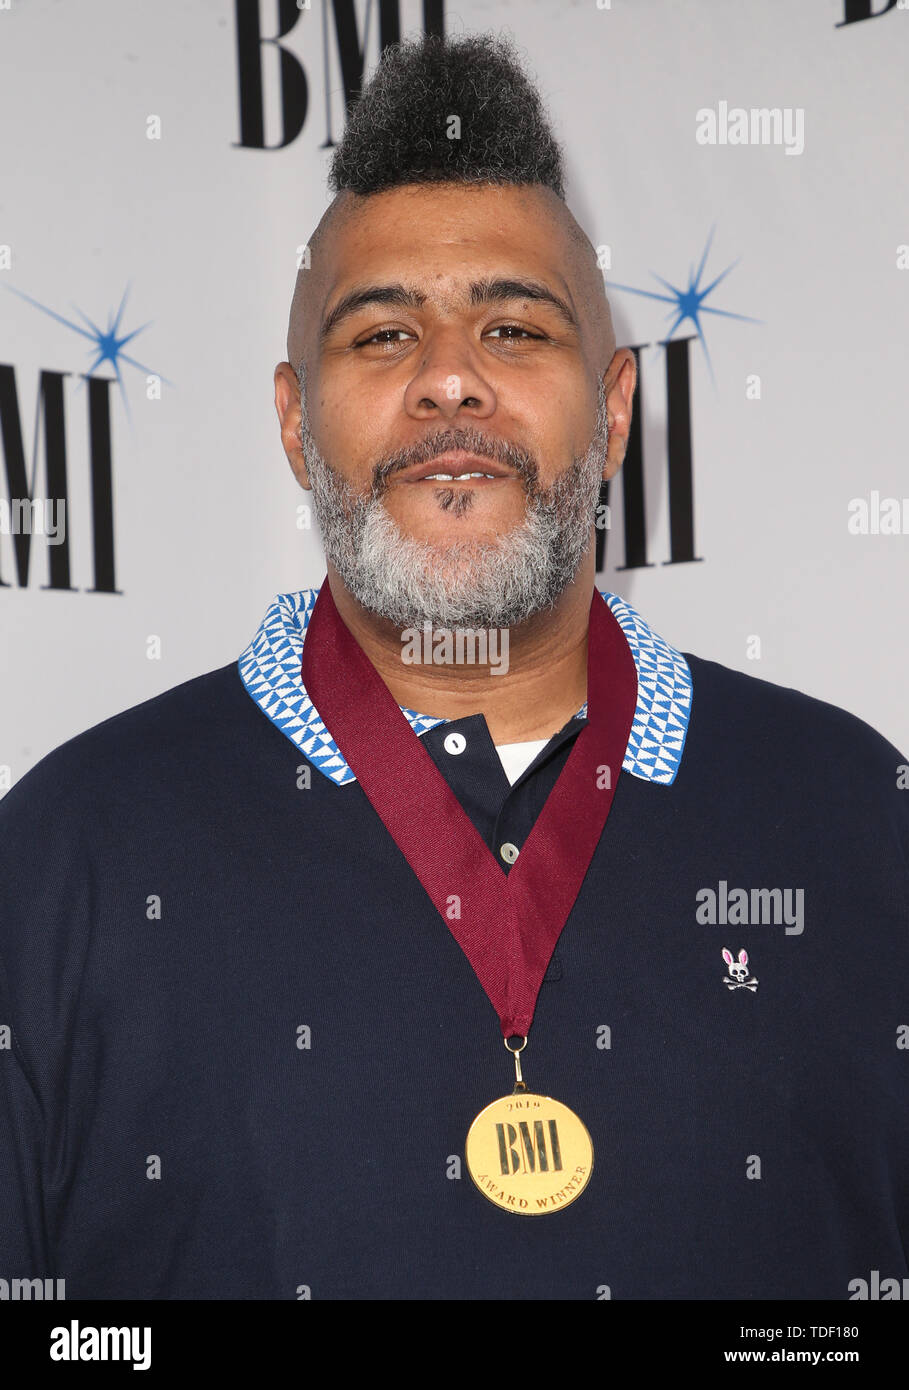 67th Annual BMI Pop Awards  Featuring: Warren 'Oak' Felder Where: Beverly Hills, California, United States When: 15 May 2019 Credit: FayesVision/WENN.com - Stock Image